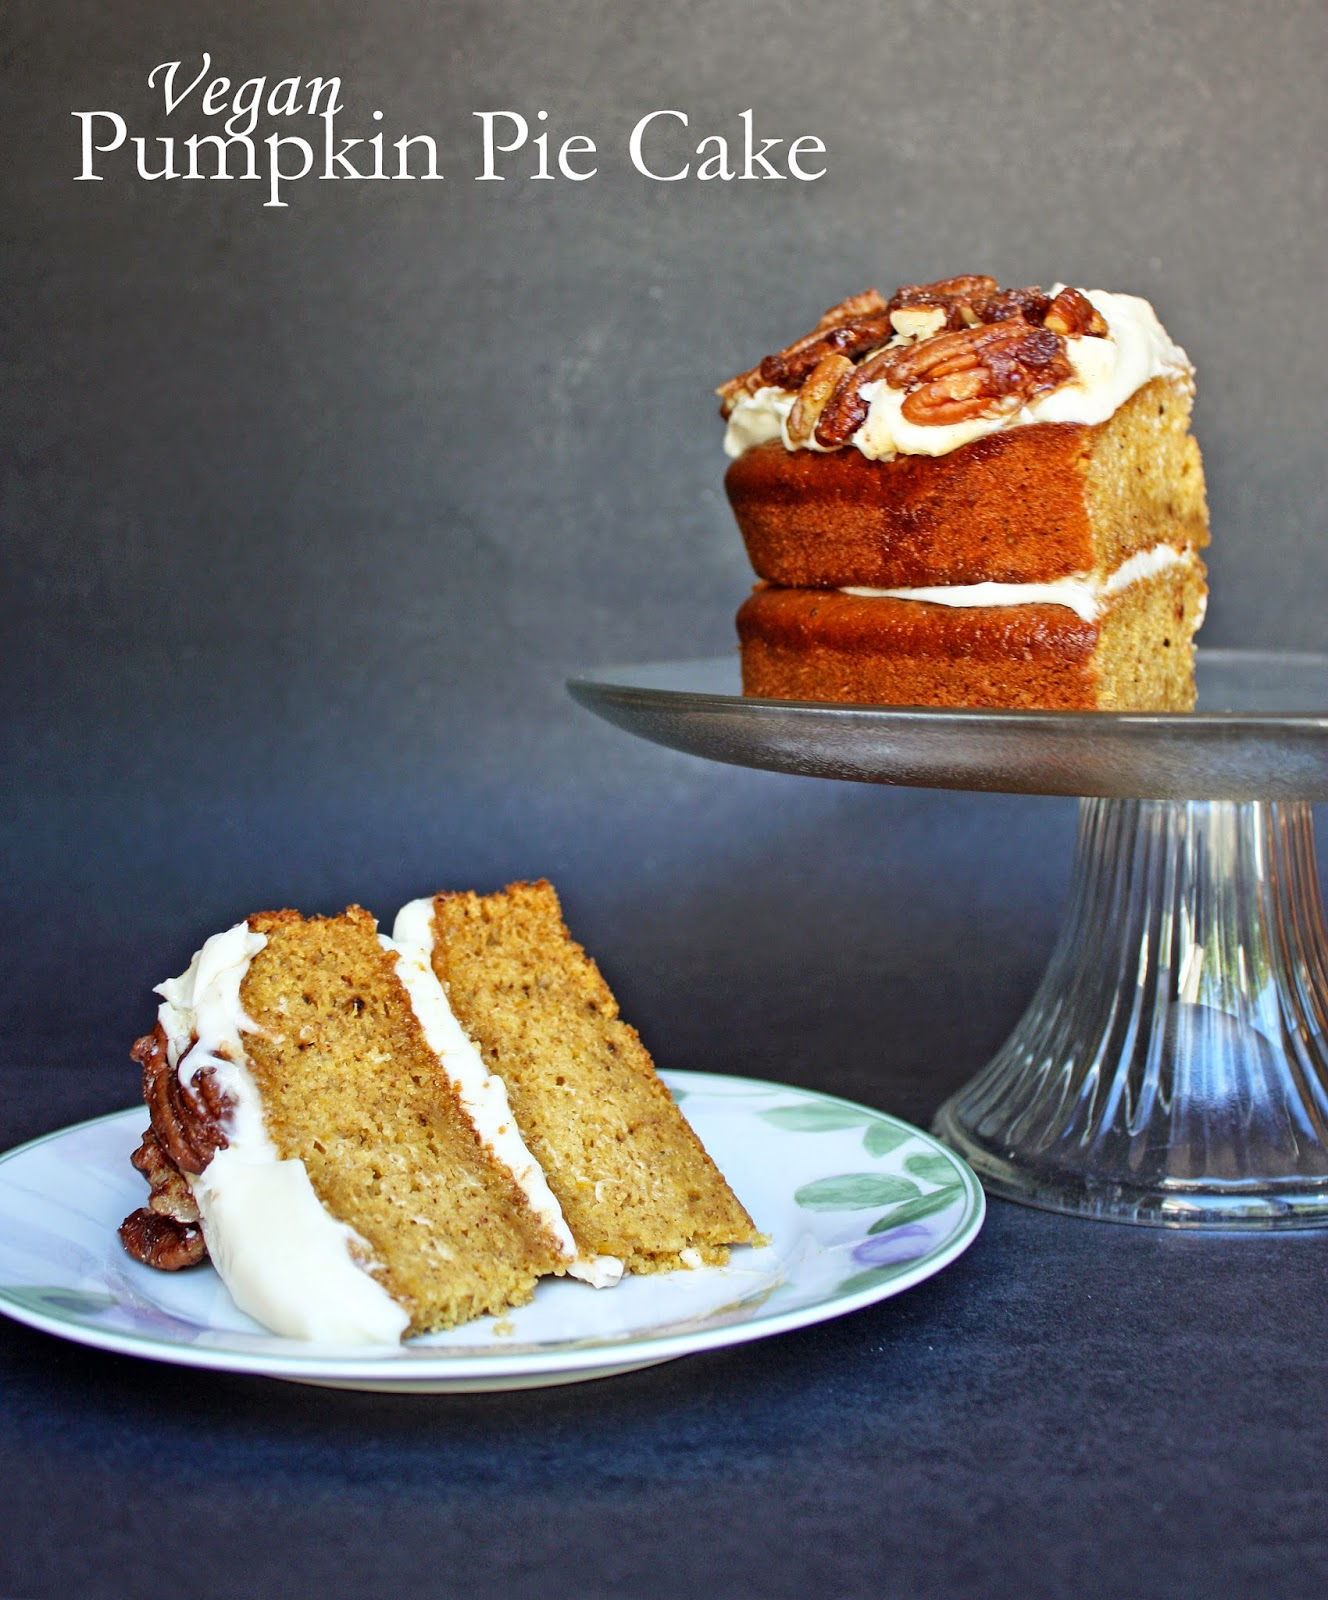 vegan pumpkin pie cake with cream cheese frosting and candied pecans